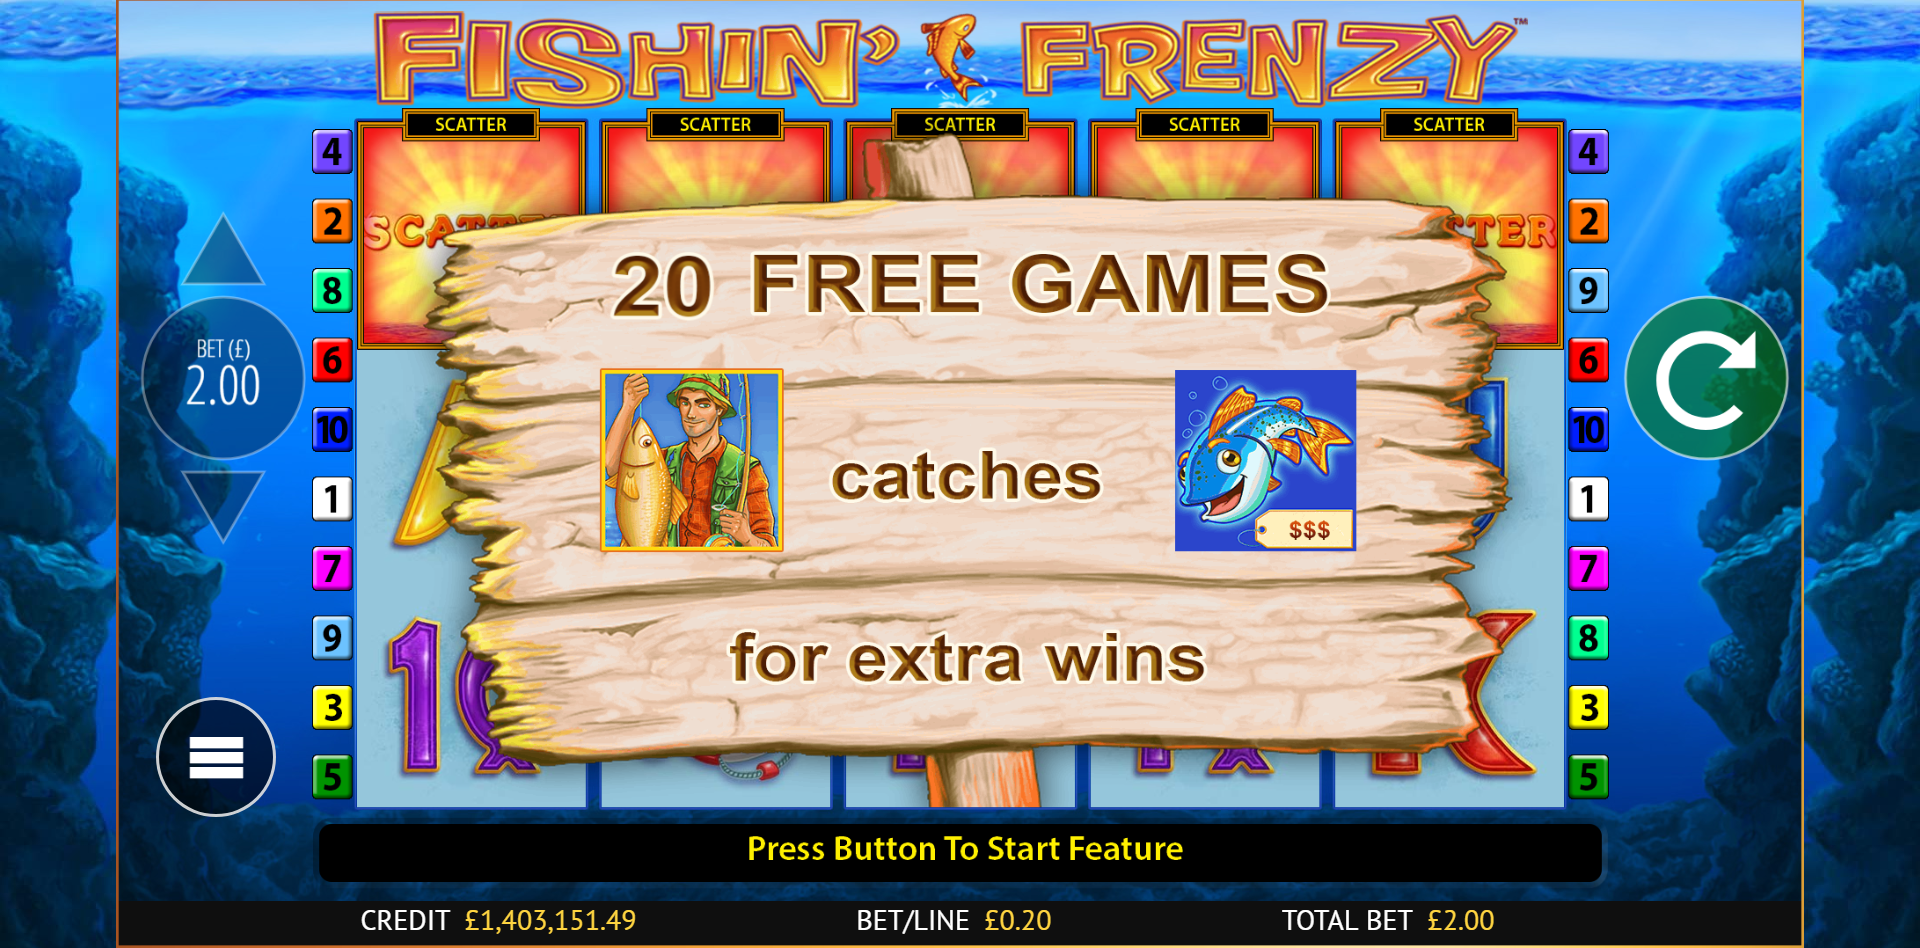 Fishin' Frenzy Slot Free Bonus